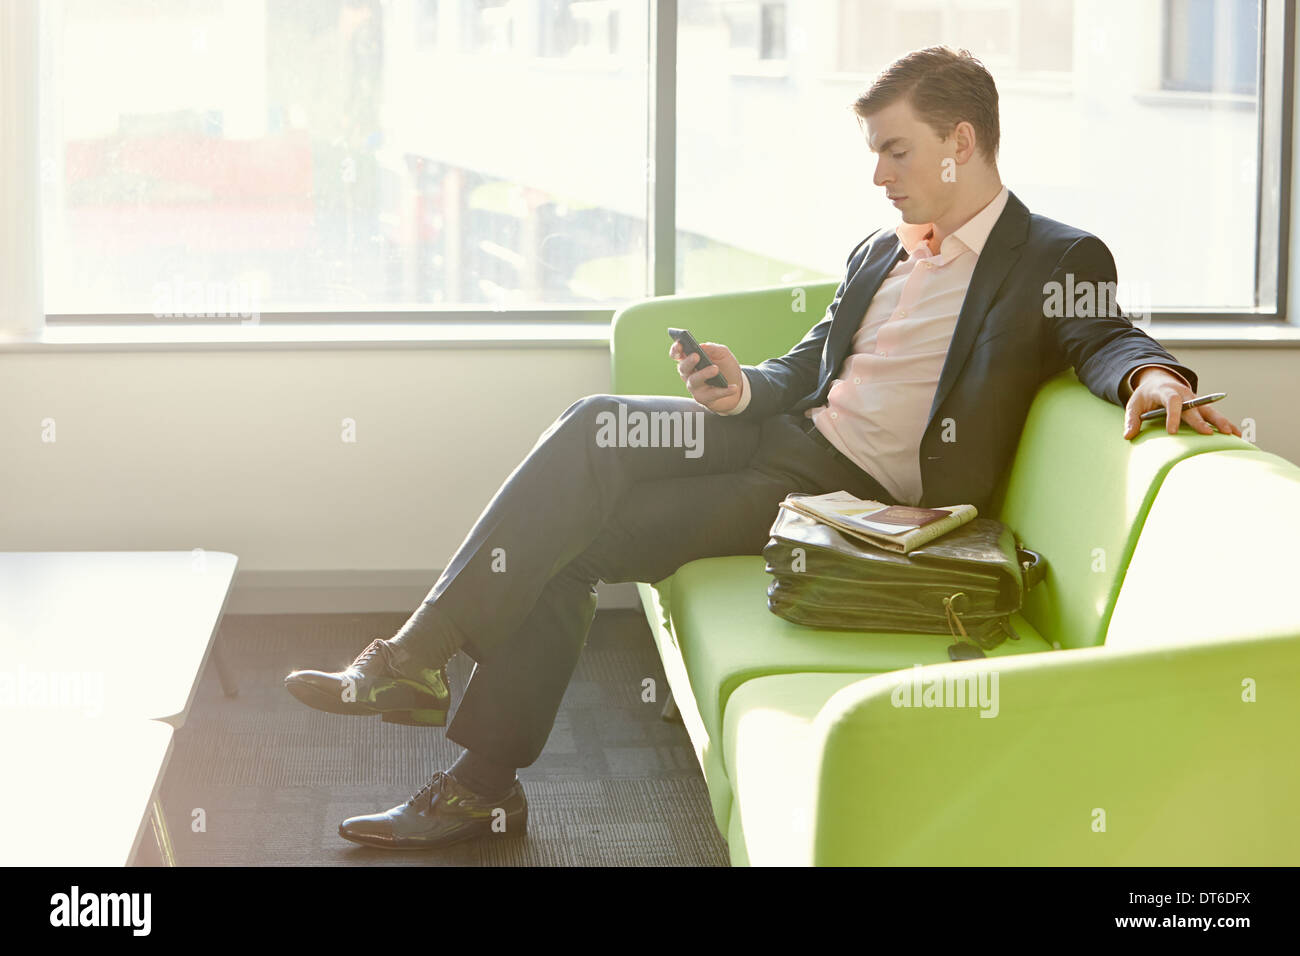 Businessman in departure lounge using cell phone - Stock Image